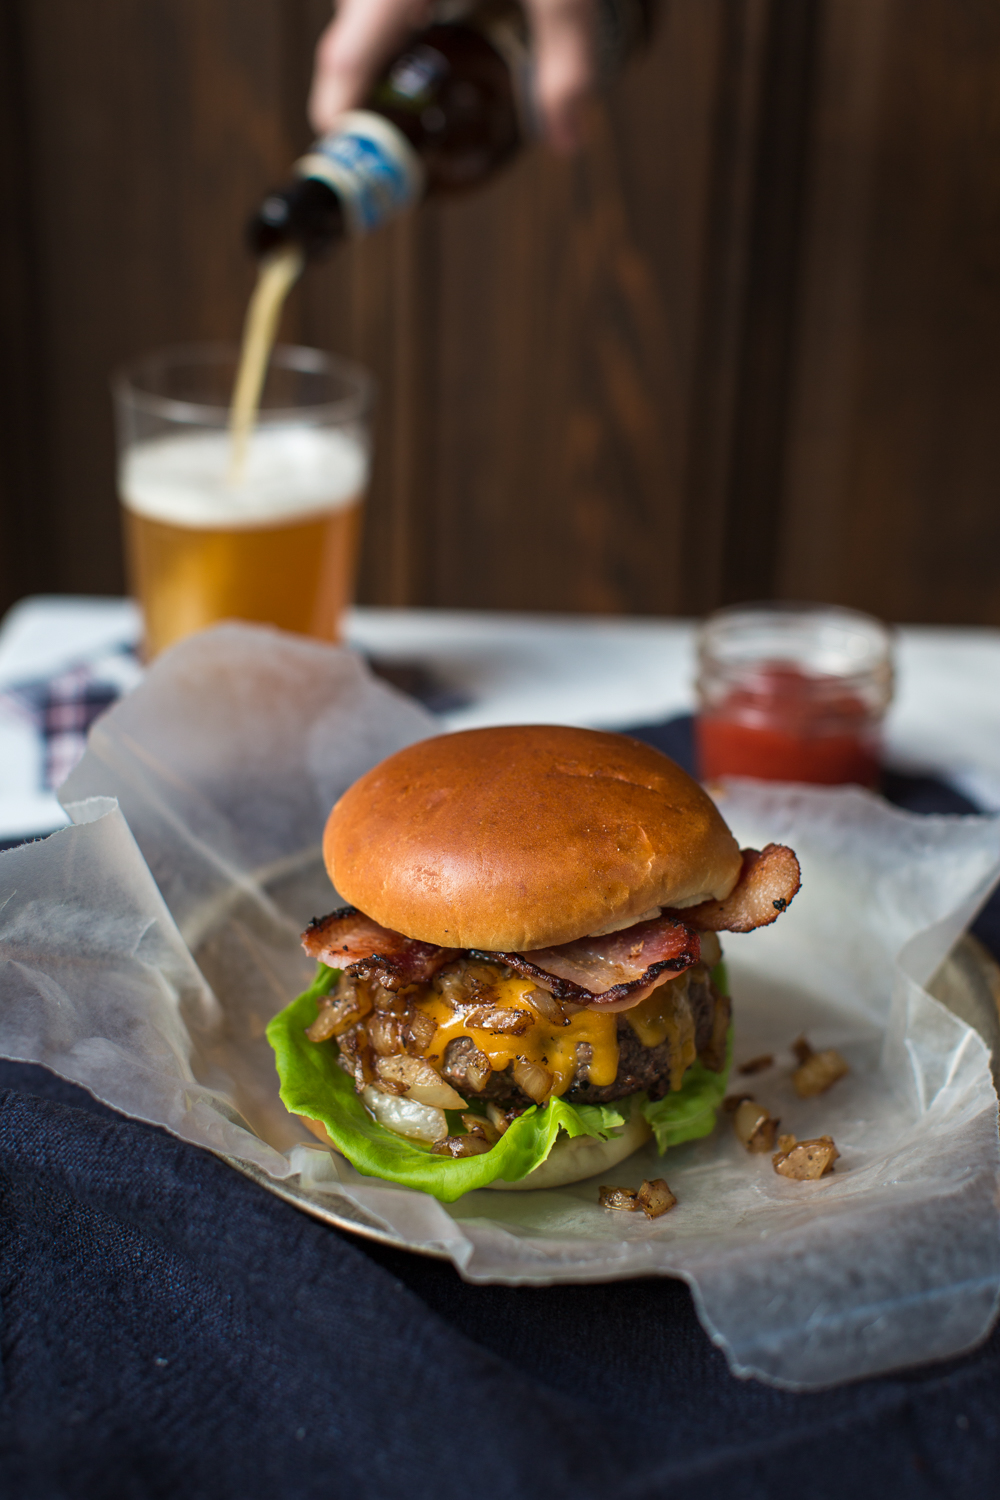 heinens_4pmpanic_Whiskey_burger-8796